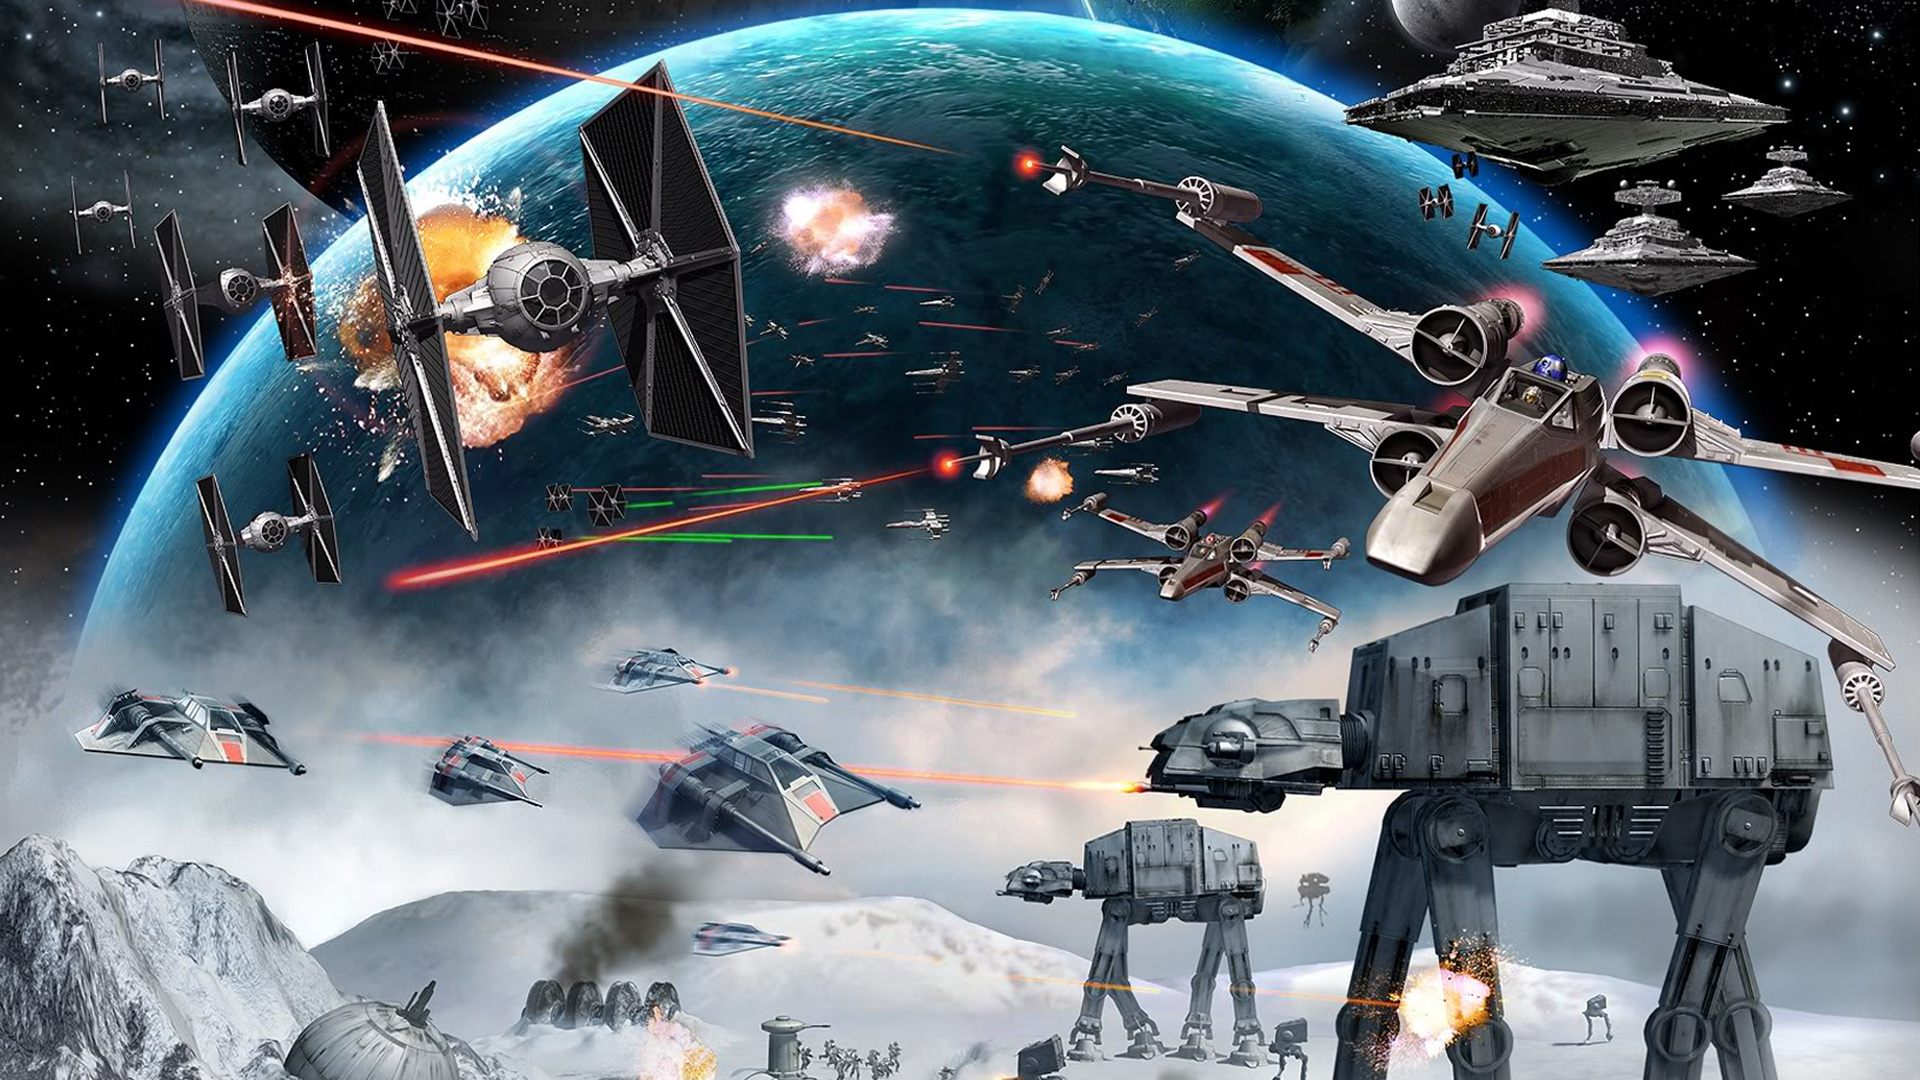 ... Star Wars Wallpaper ...